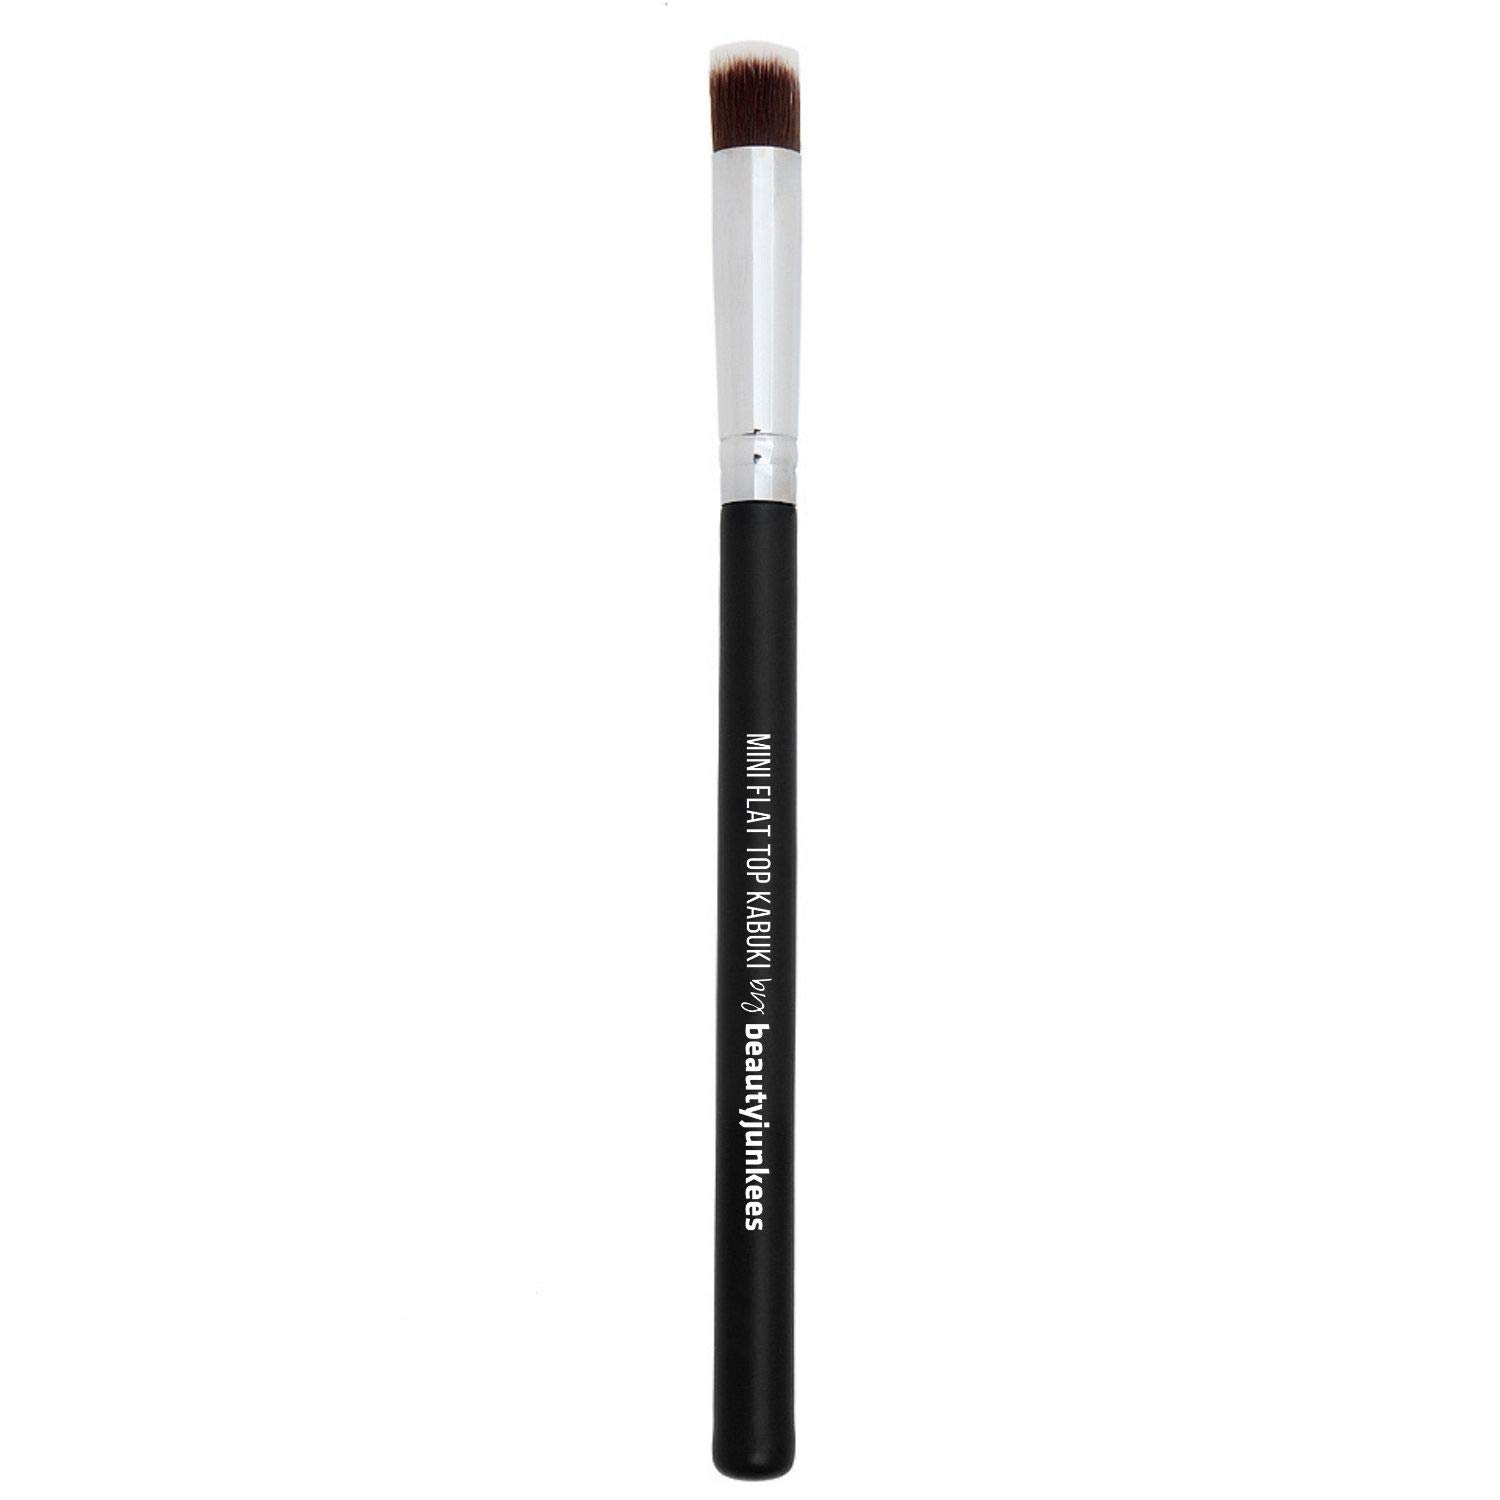 Under Eye Concealer Makeup Brush - Small Mini Flat Top Kabuki Synthetic Bristles for Acne and Undereye Concealing, Professional Blending Liquid, Powder, Cream, Mineral Cosmetics, Full Coverage, Vegan